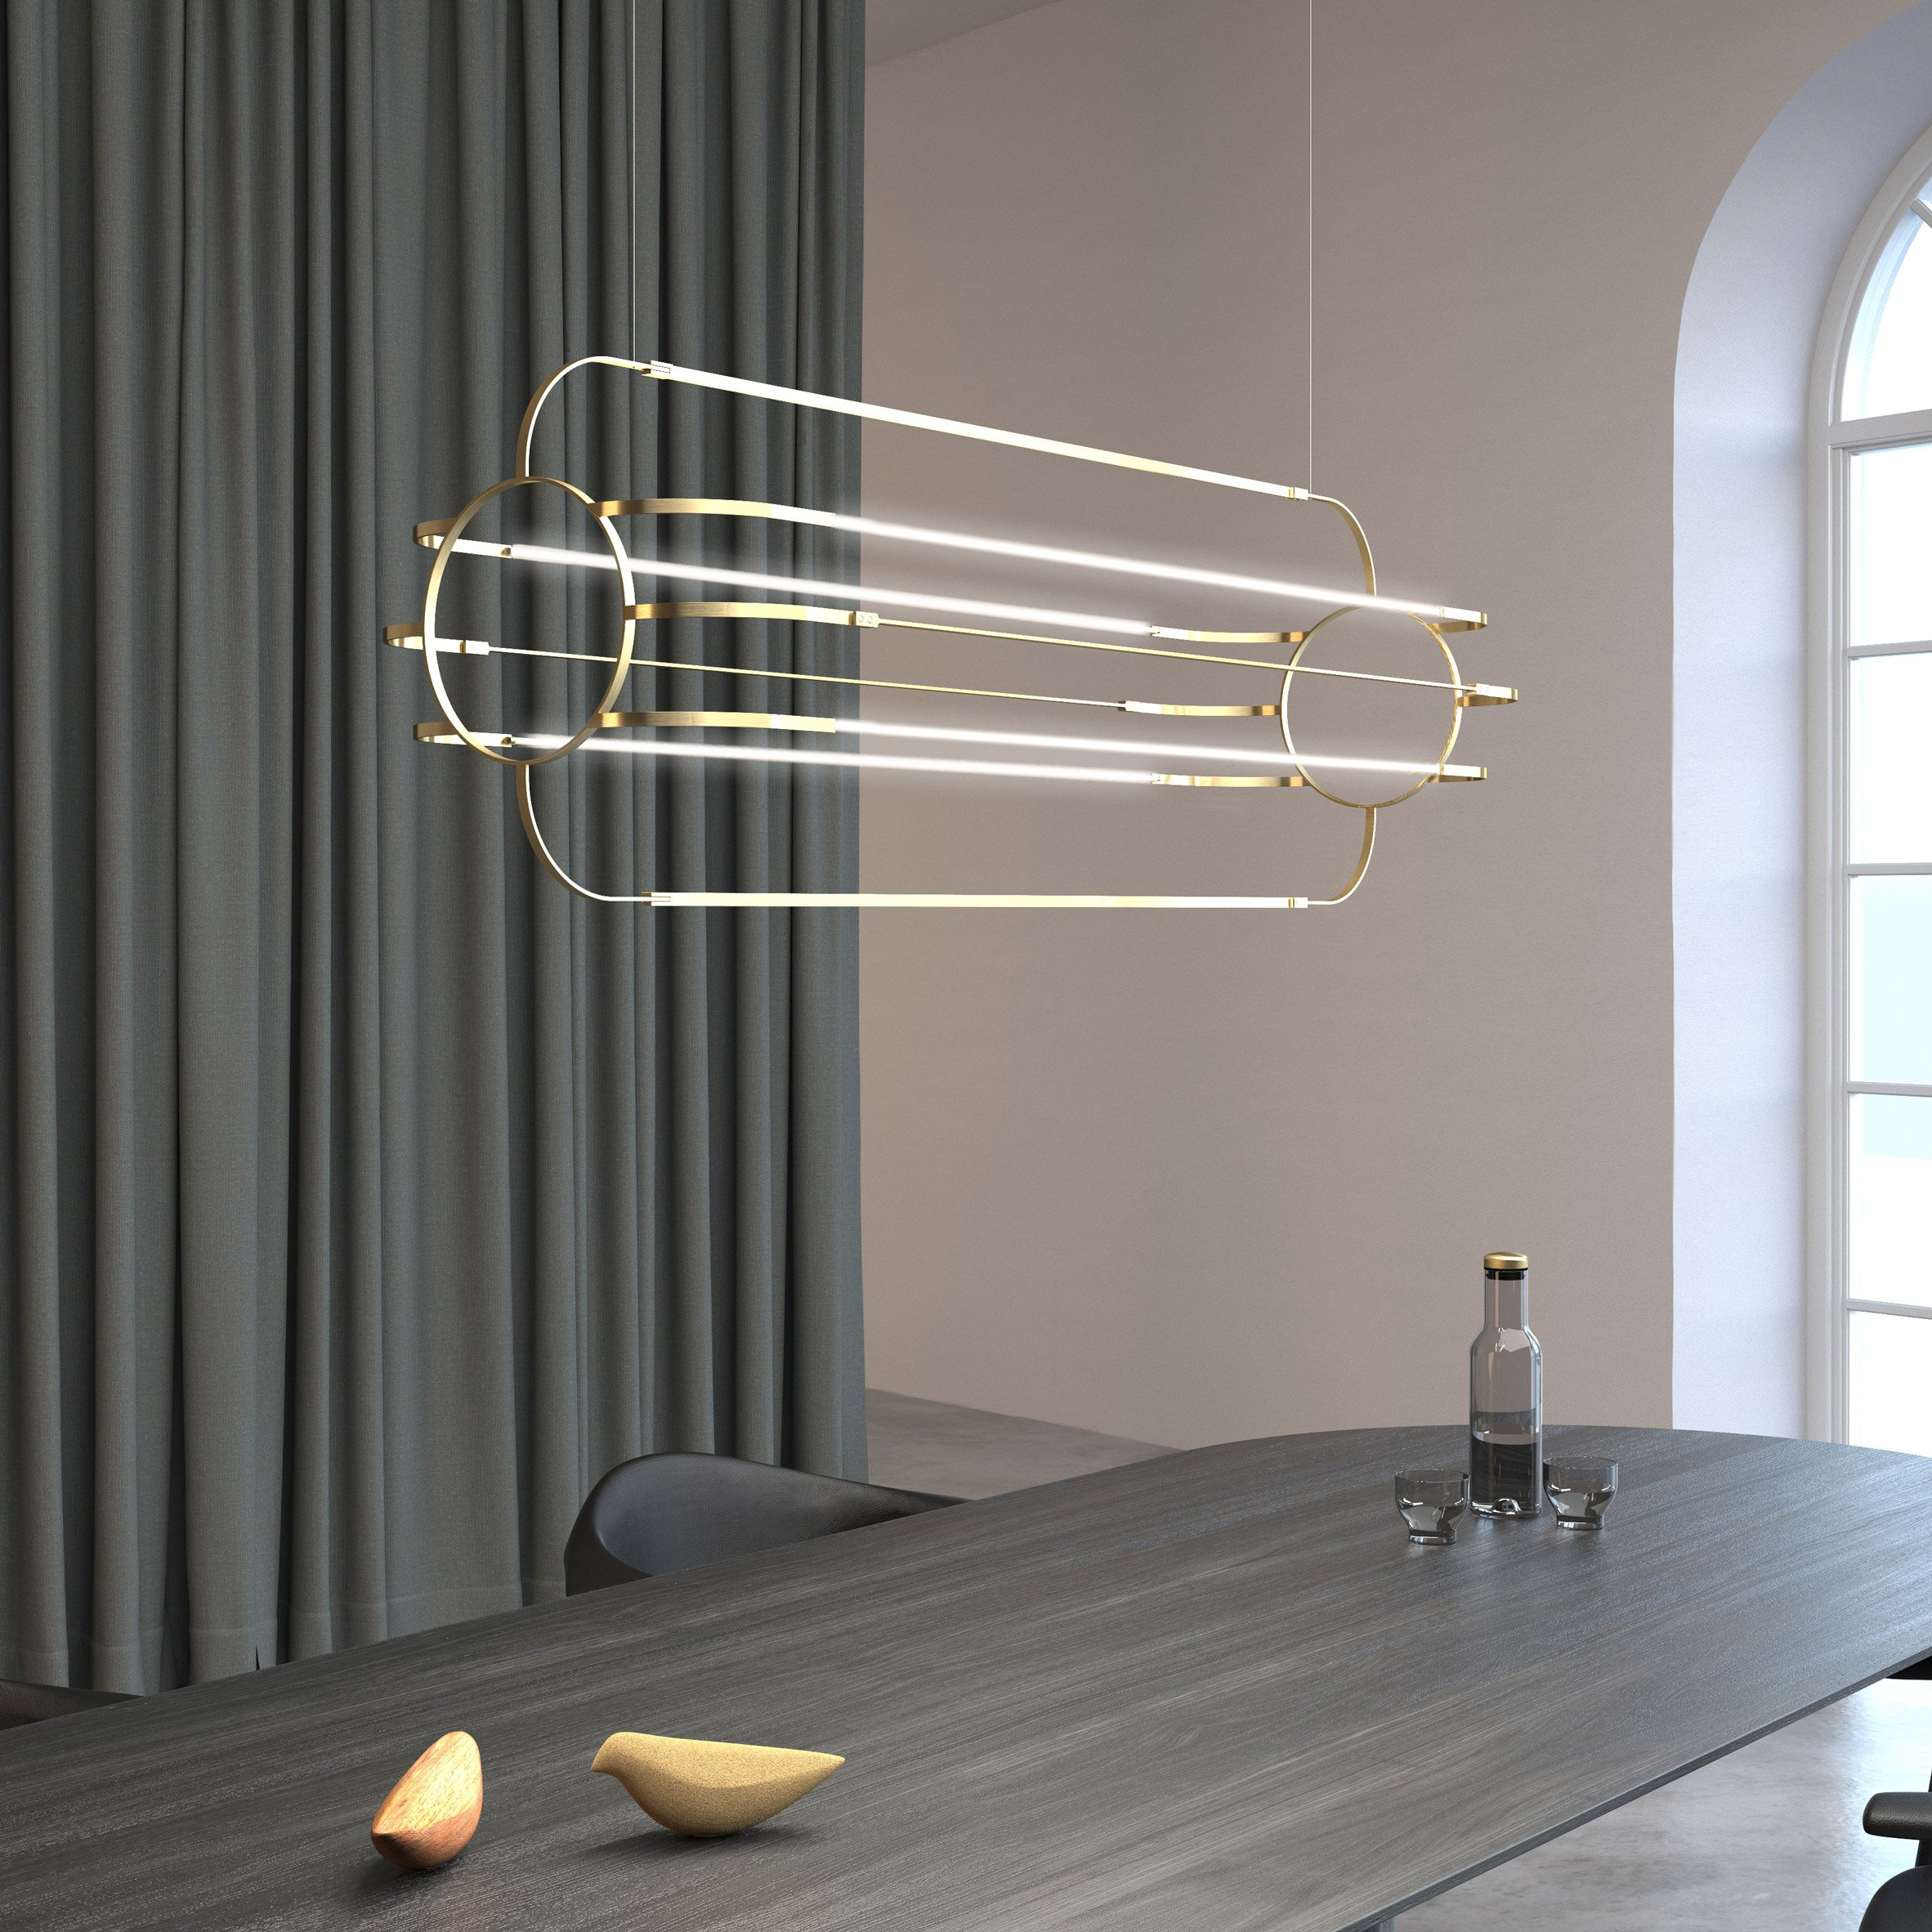 Charlotte pendant light by Daniel Becker Studio above a dining table